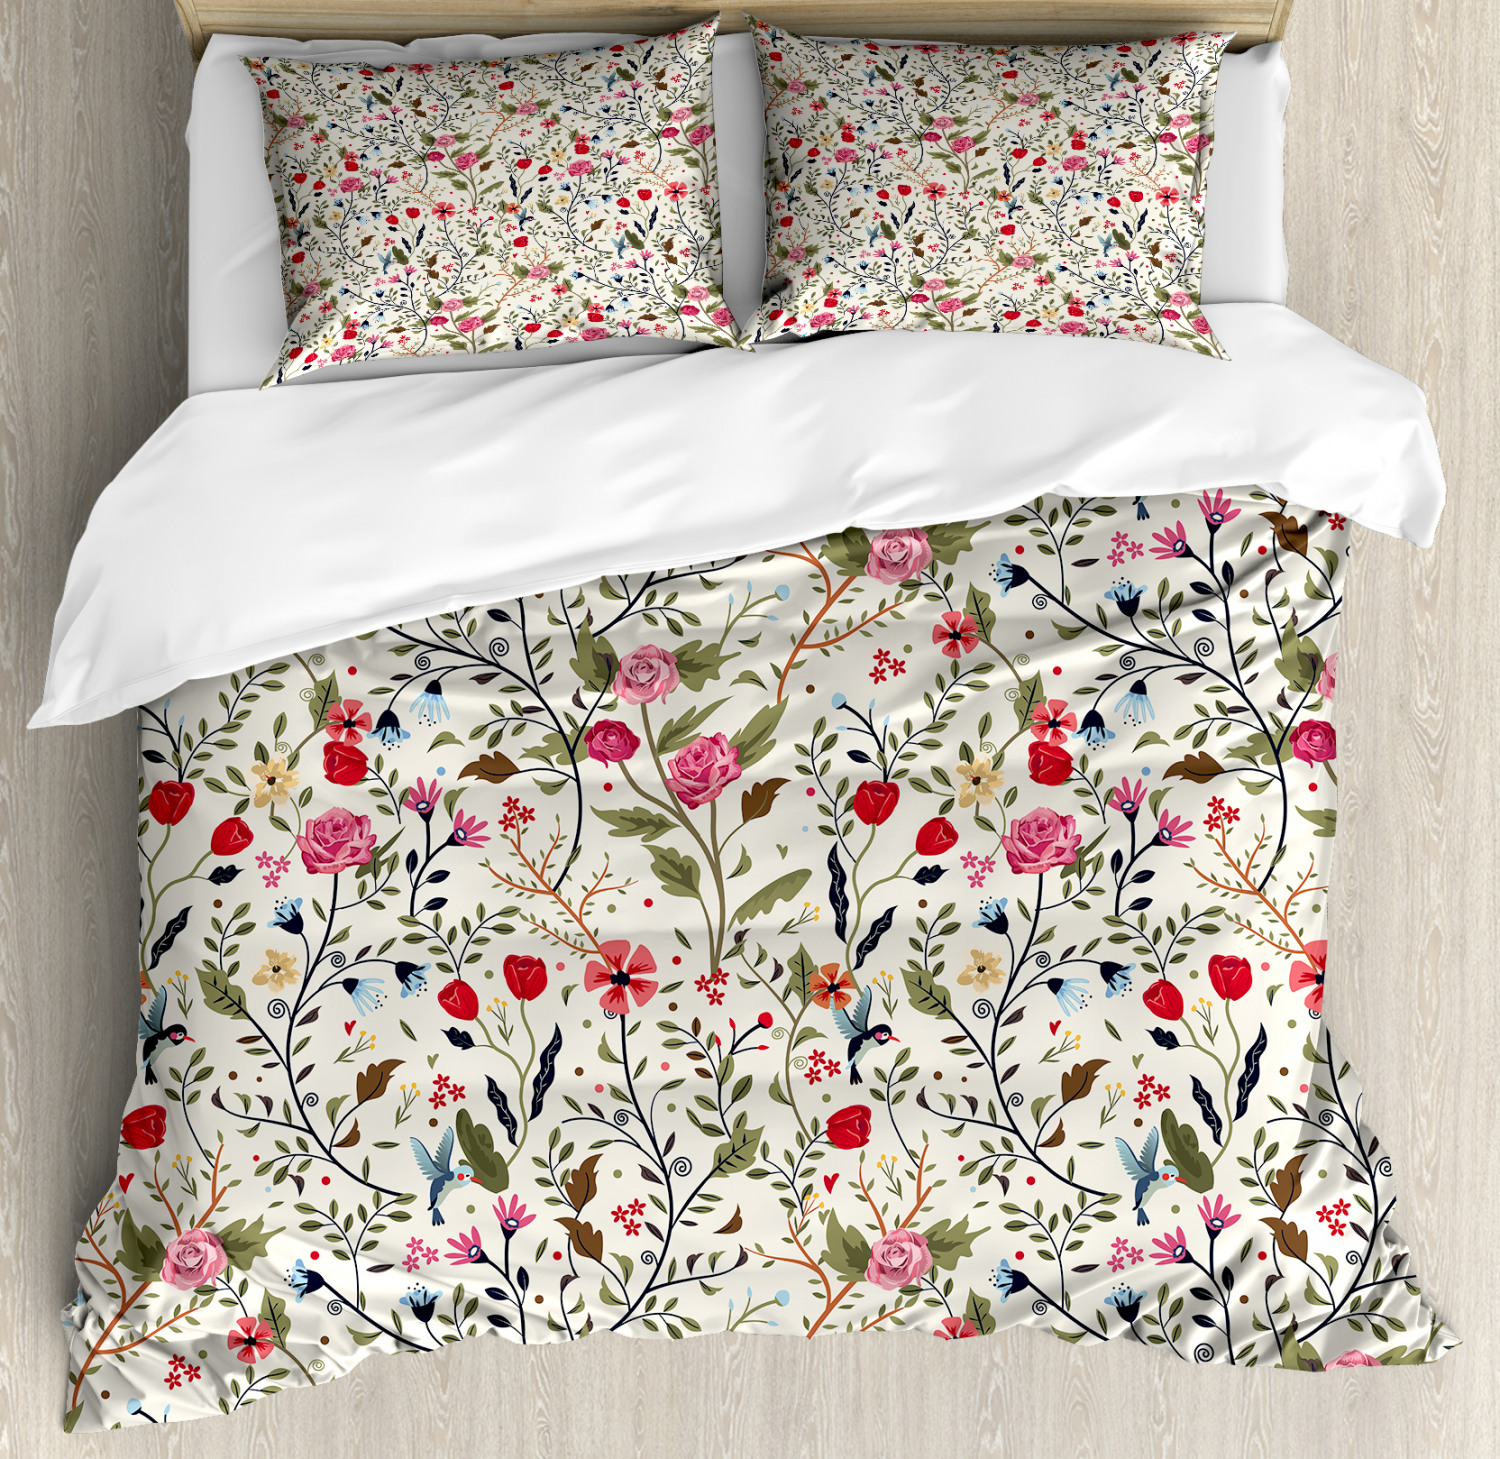 Floral Duvet Cover Set with Pillow Shams Birds Roses Polka D